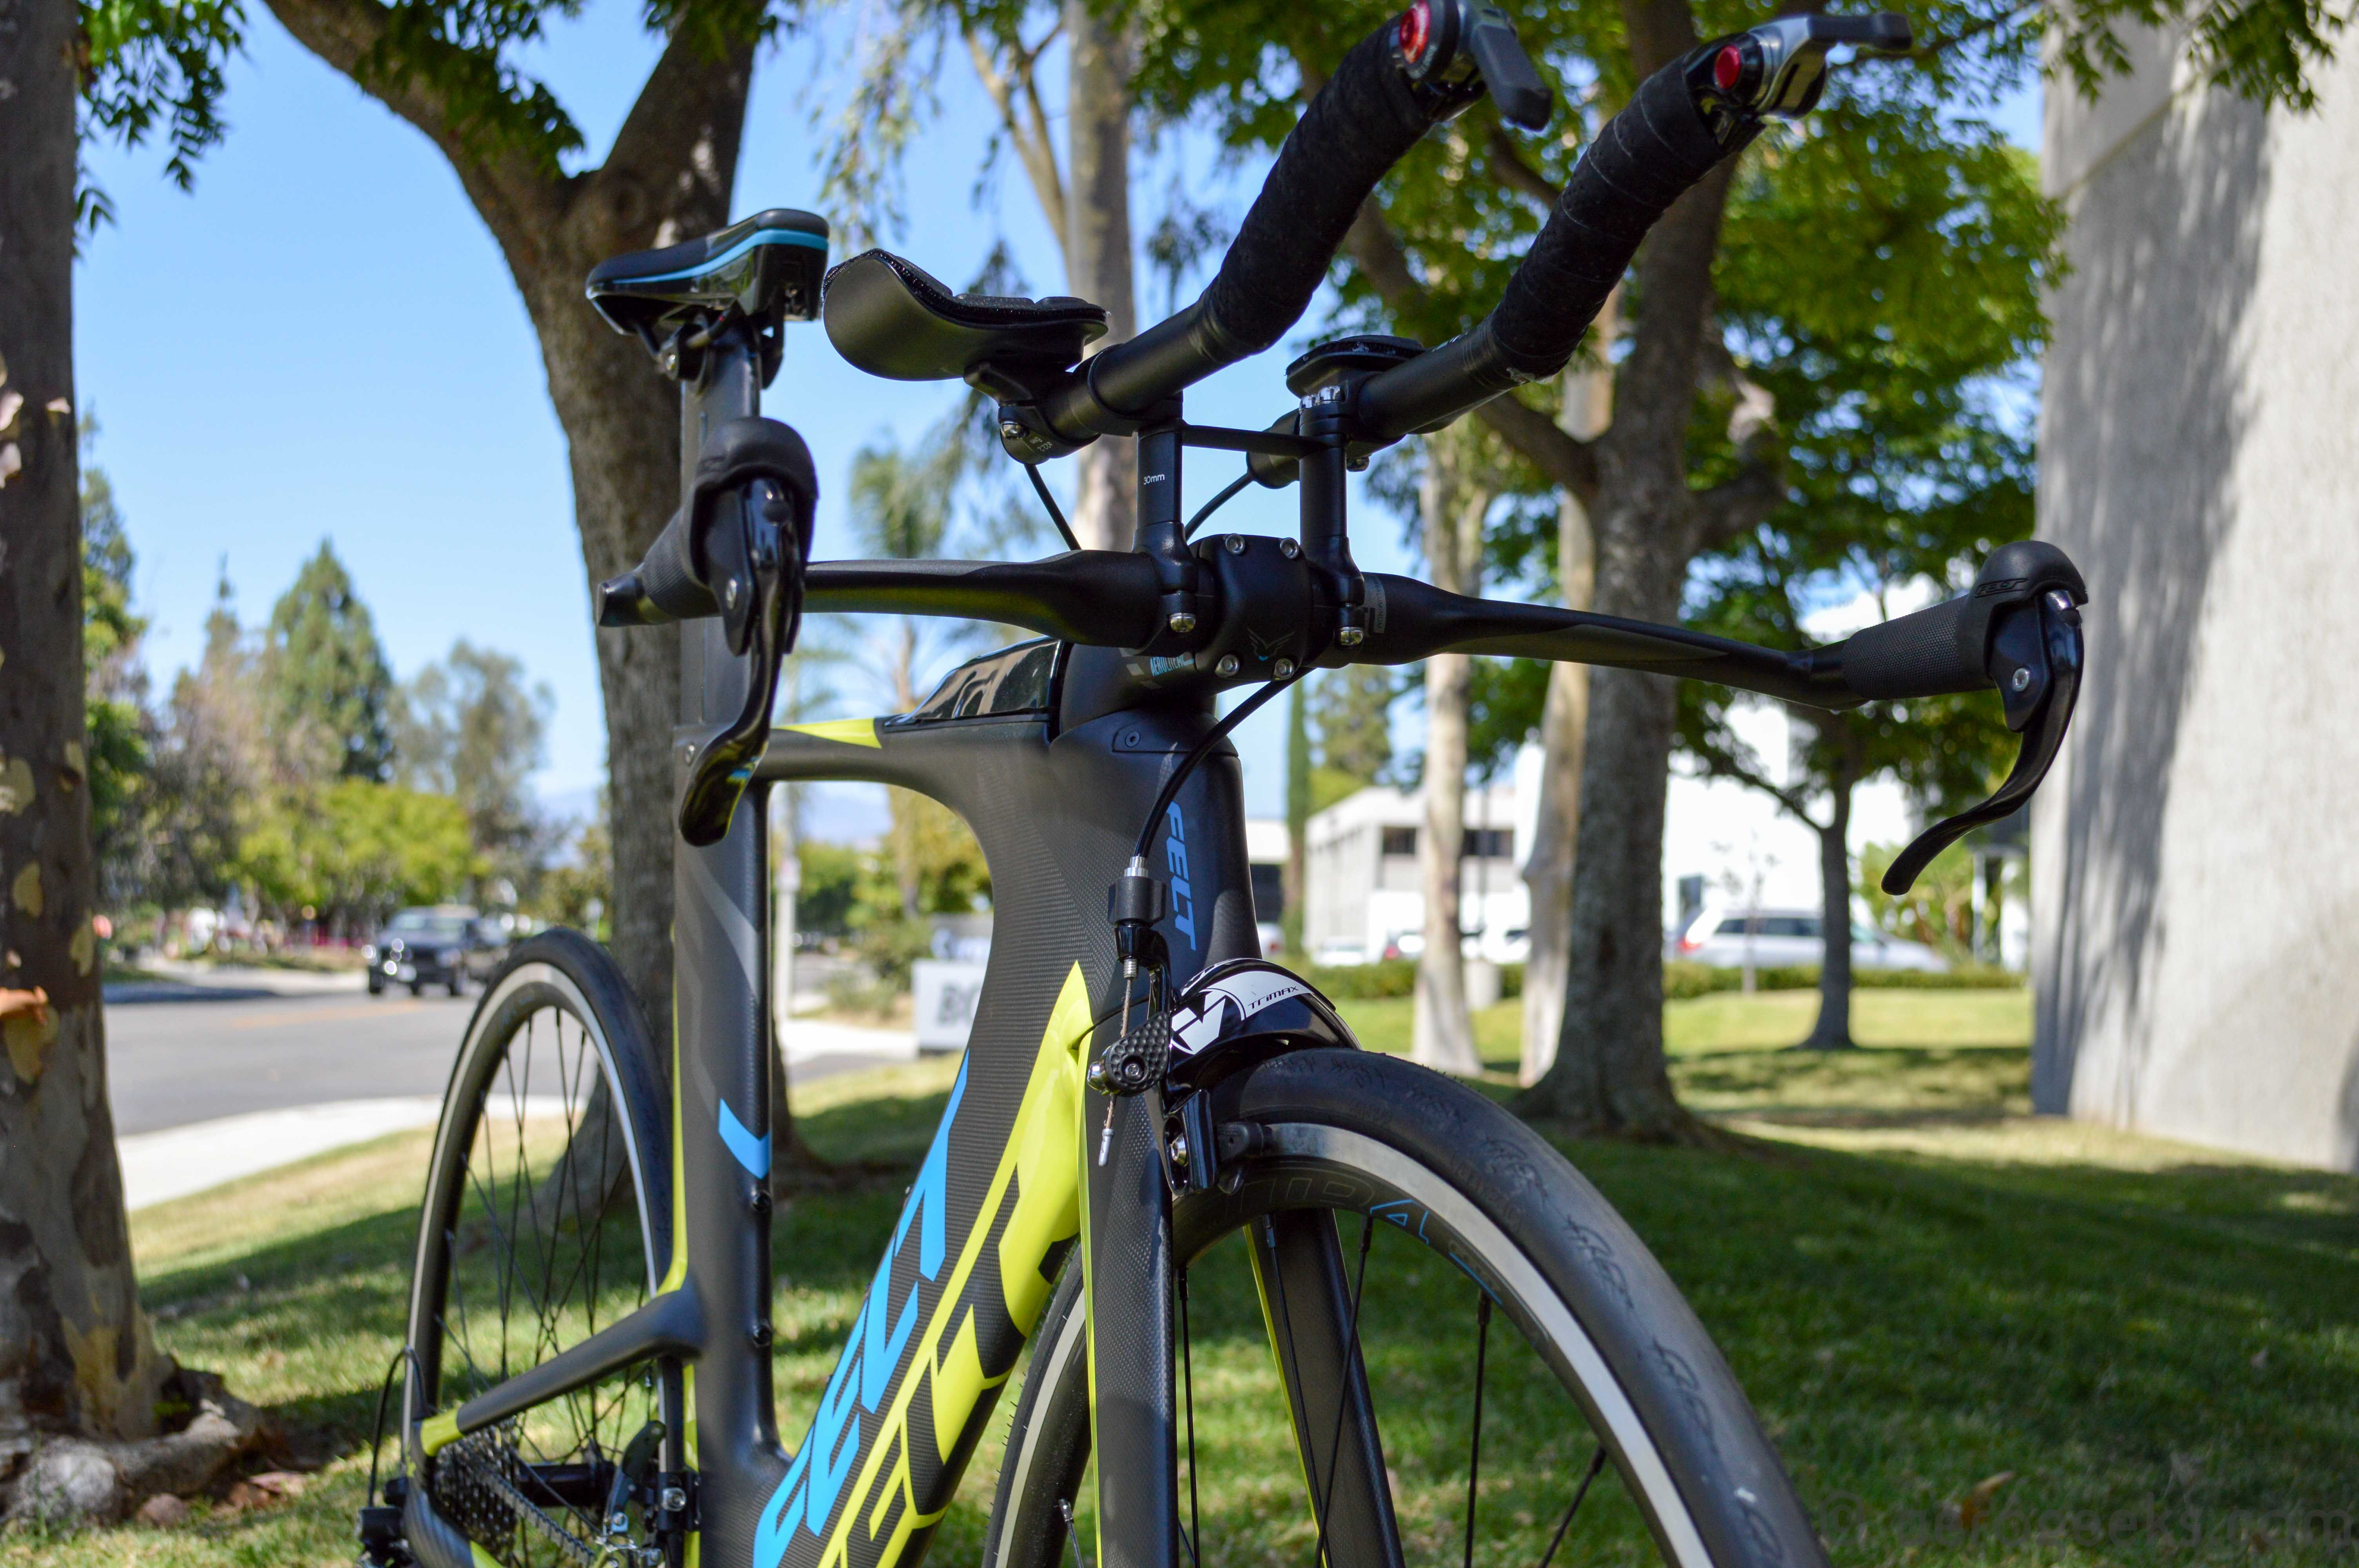 ia 14 Beat the unbeaten path: 2018 open up continuing the momentum generated from the classic, the new up was designed to be lighter than the original still the jack of all trades we all fell in love with, the new up can be ridden with 700c or 650b/275 wheels, with slick road tires or knobby trail tires, and with drop handlebars or flat mtb bars.